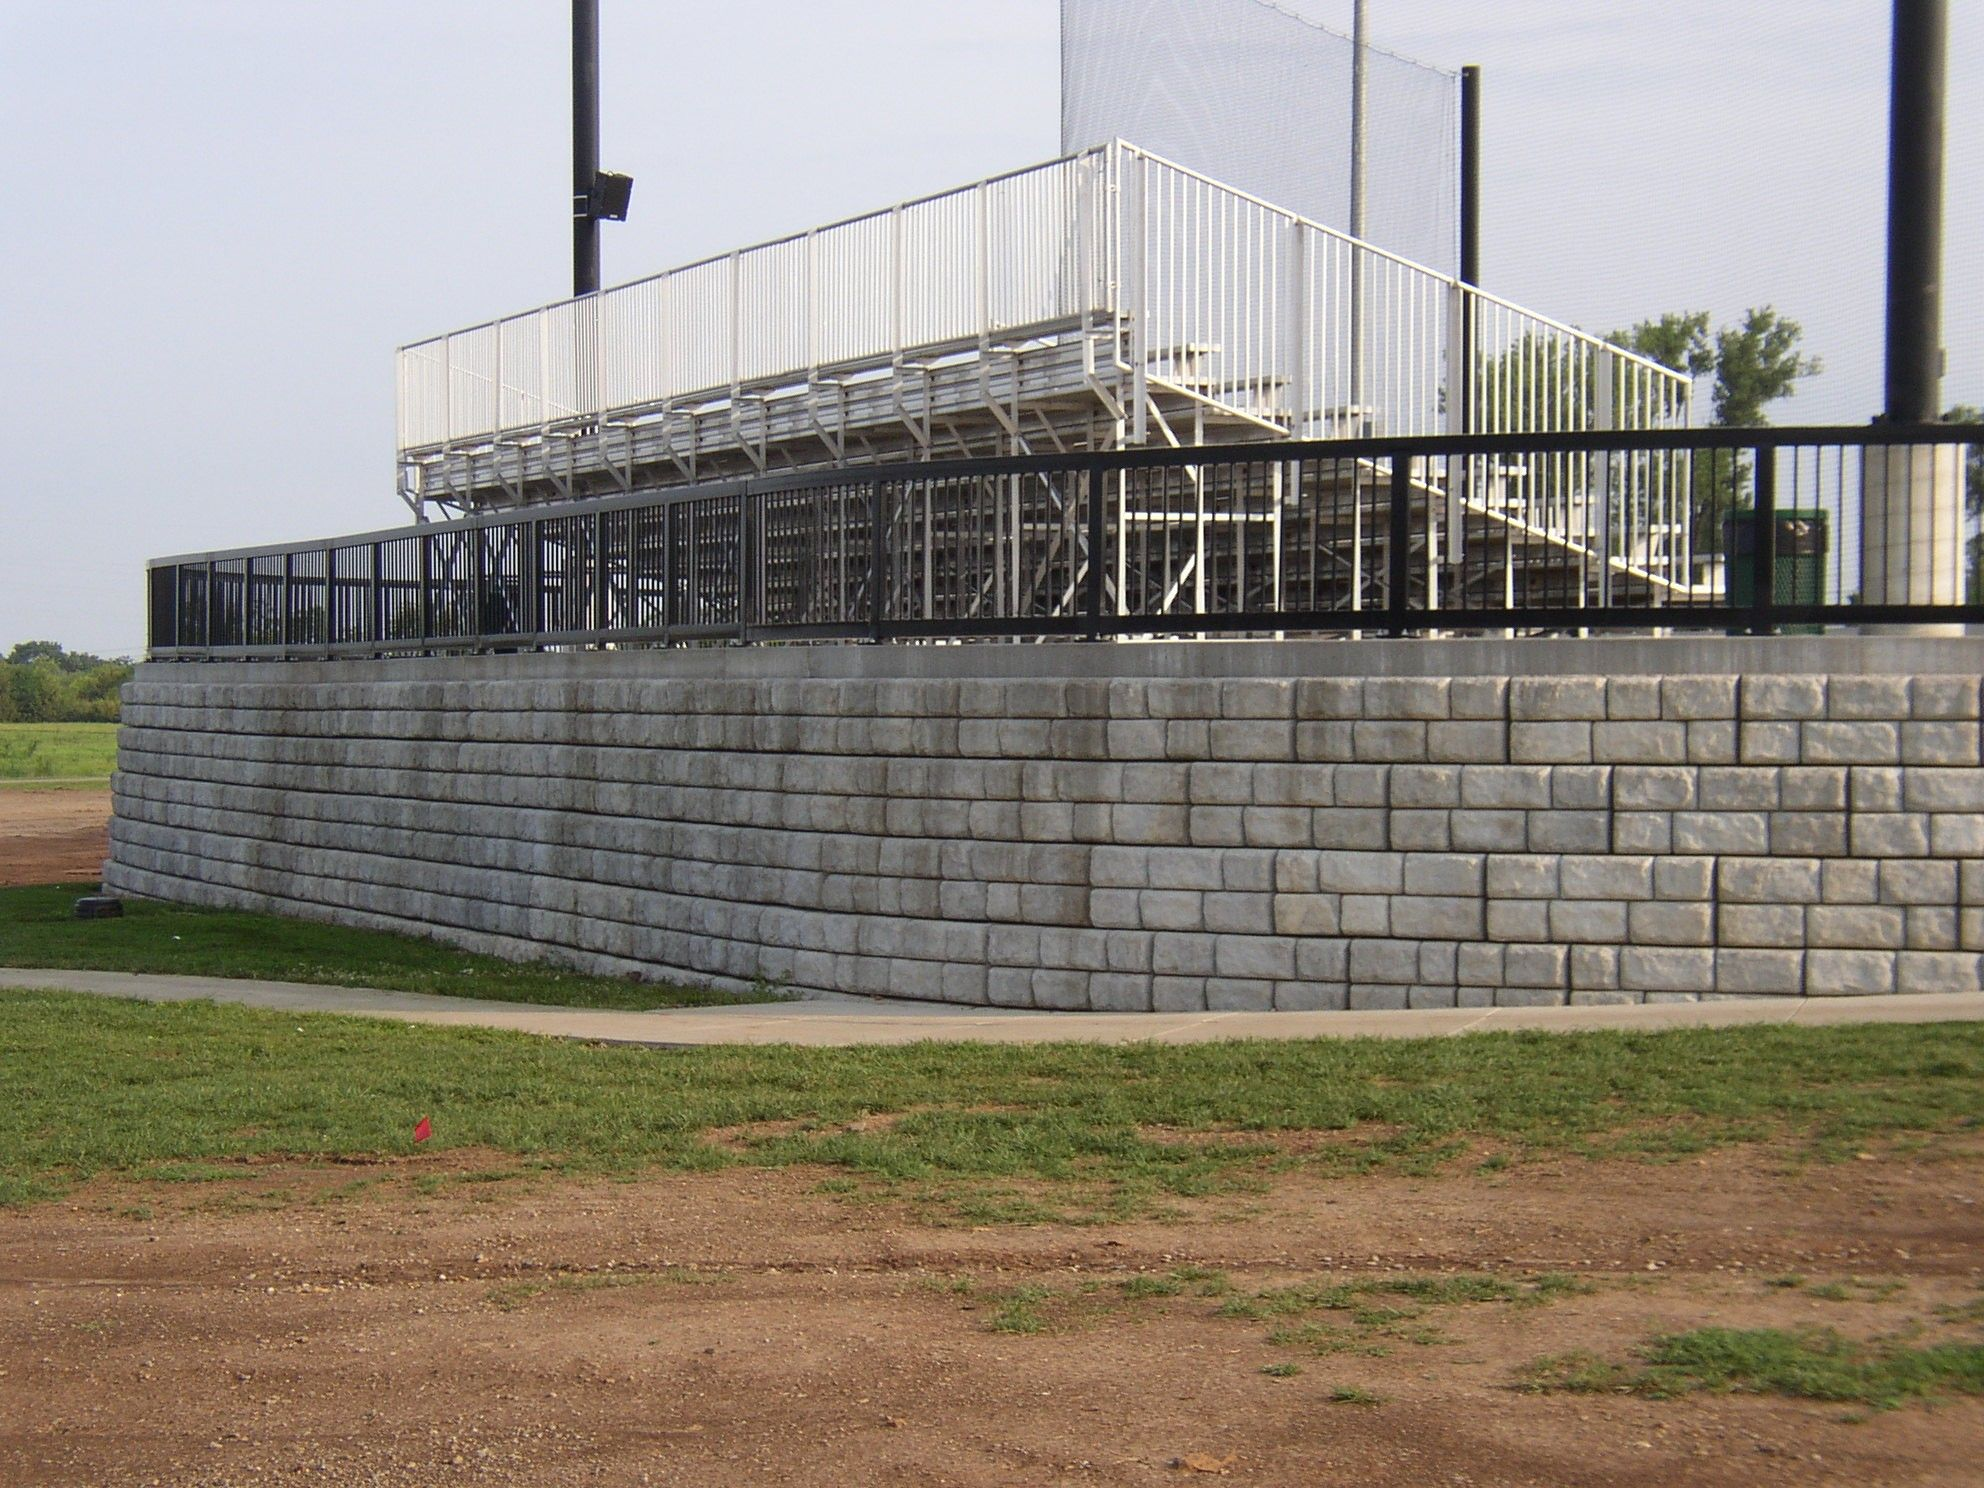 Fenced retaining wall supports bleachers